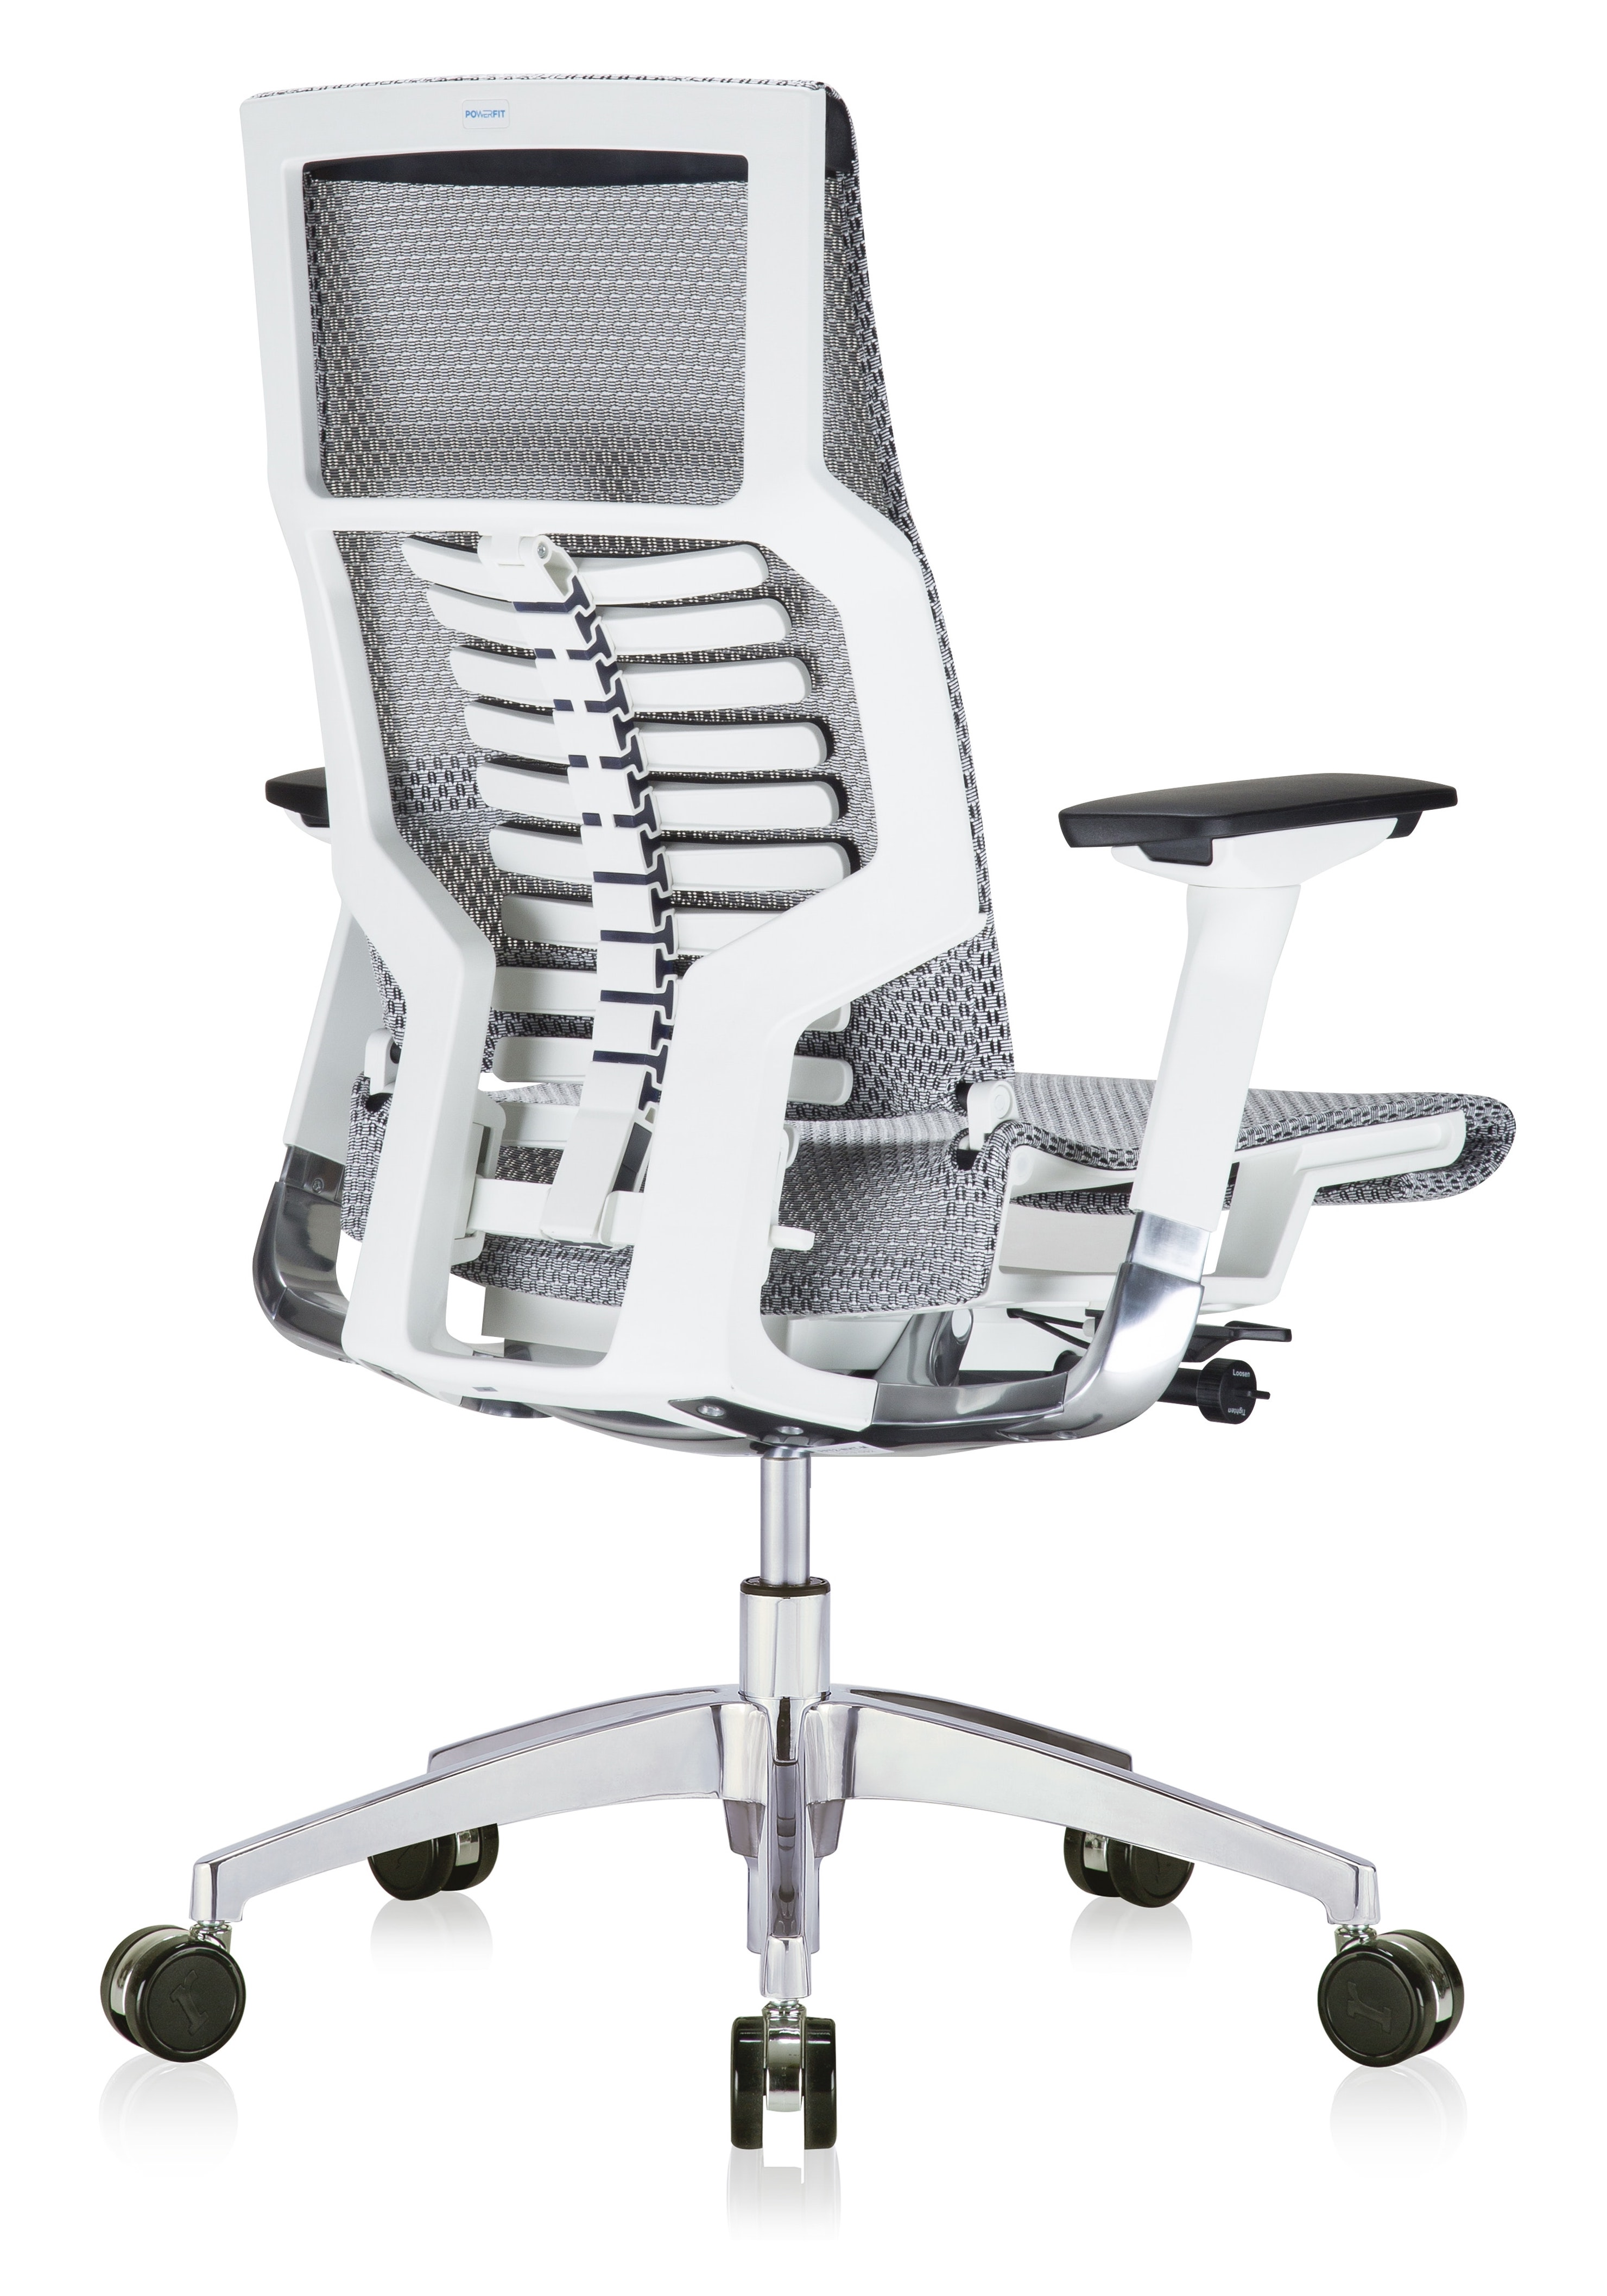 powerfit bionic chair angled view